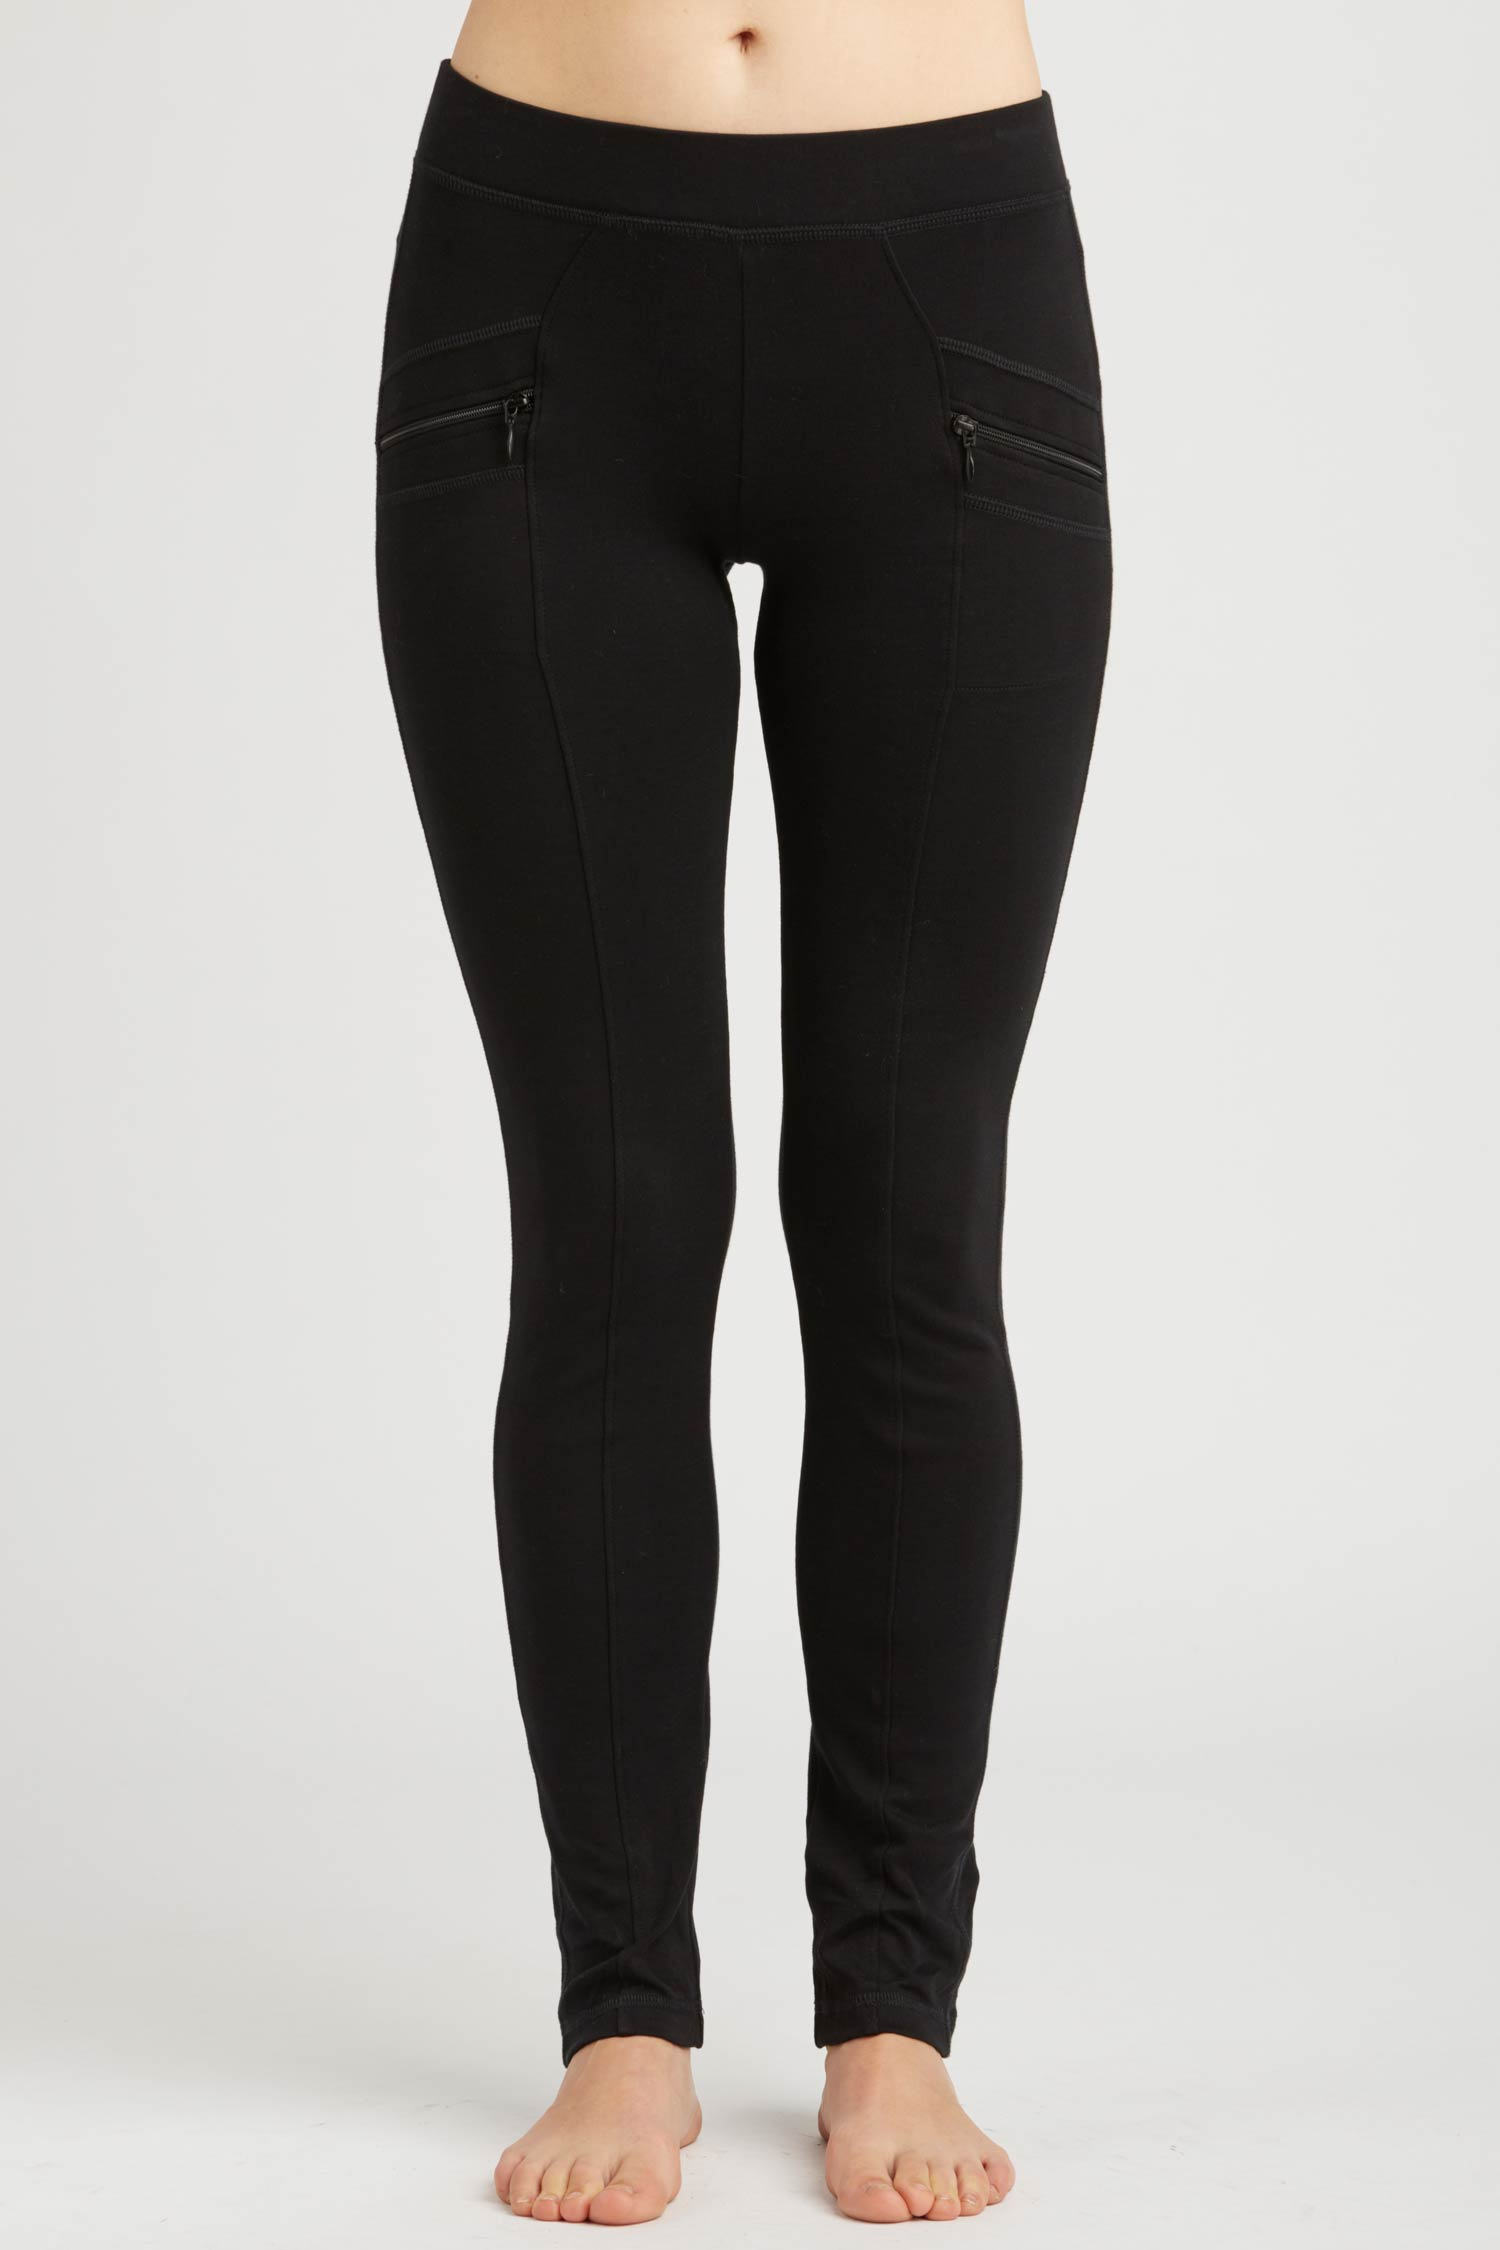 Womens Riding Pant | Black | Organic Cotton Clothing